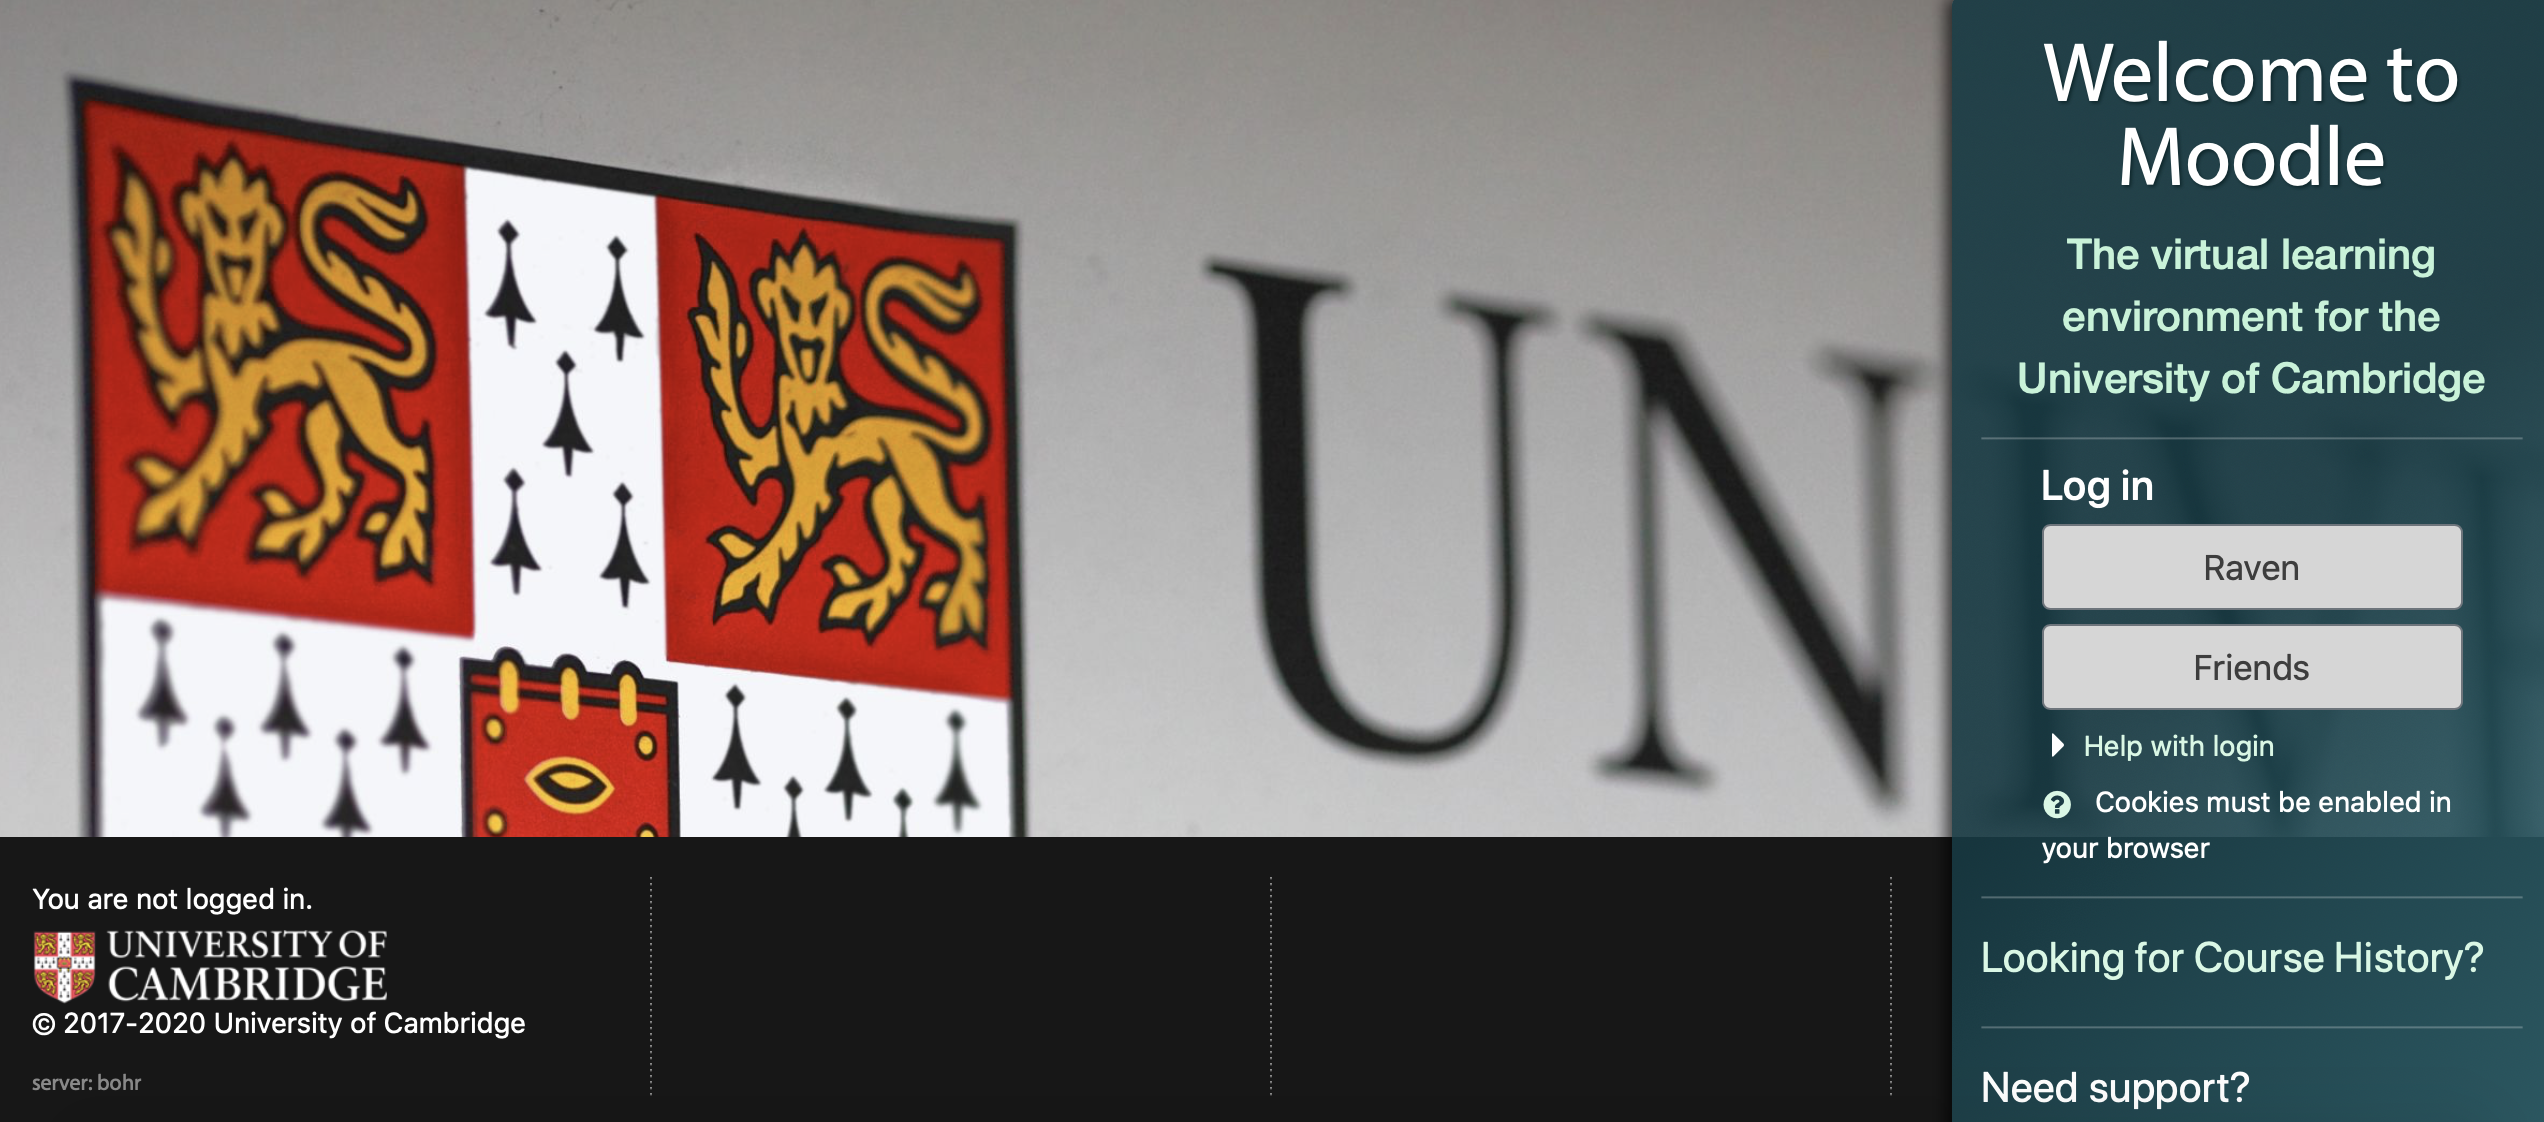 main page for The virtual learning environment for the University of Cambridge.